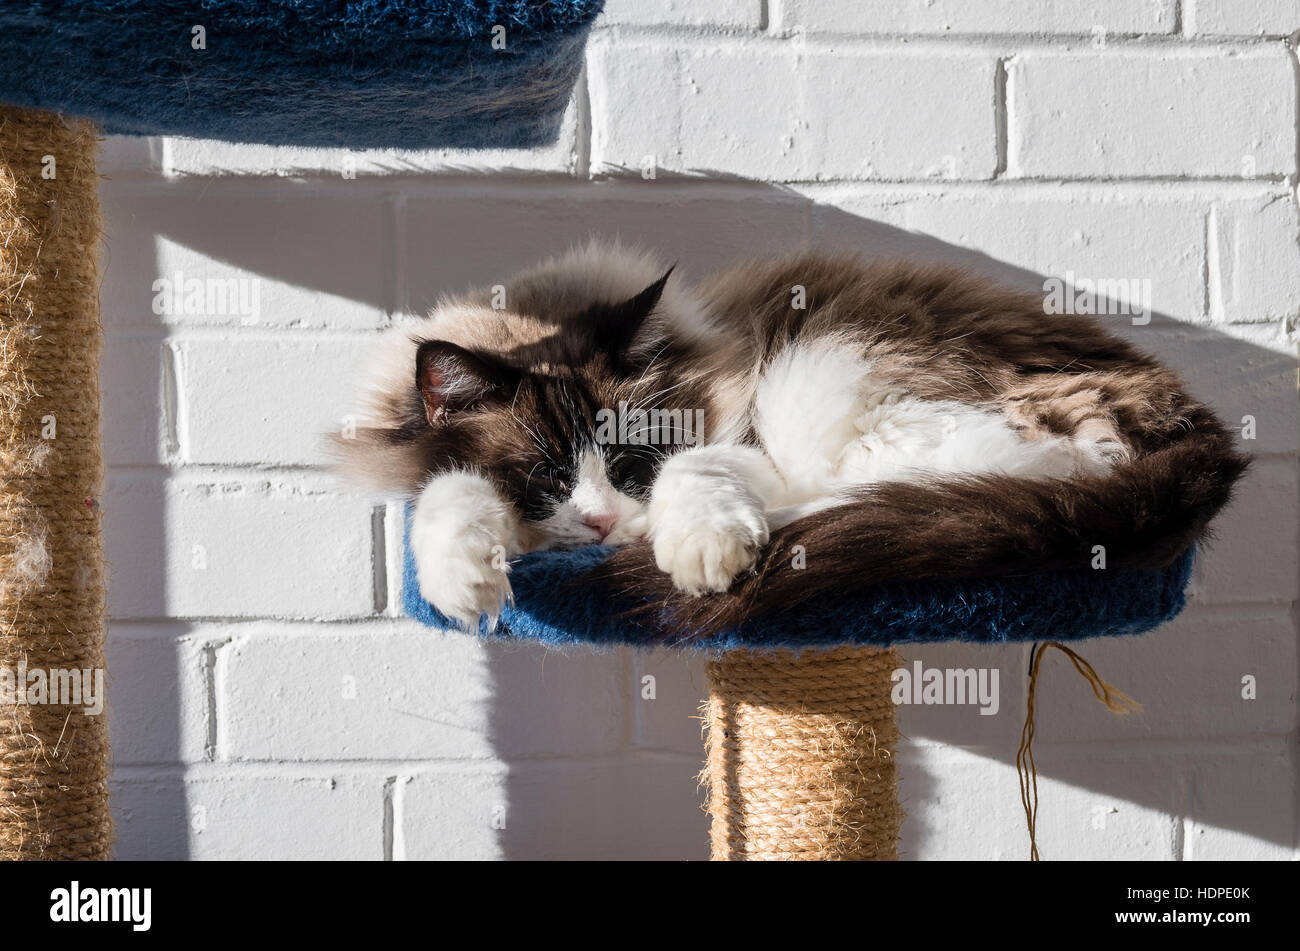 An adult Ragdoll cat basking in sunlight indoors - Stock Image